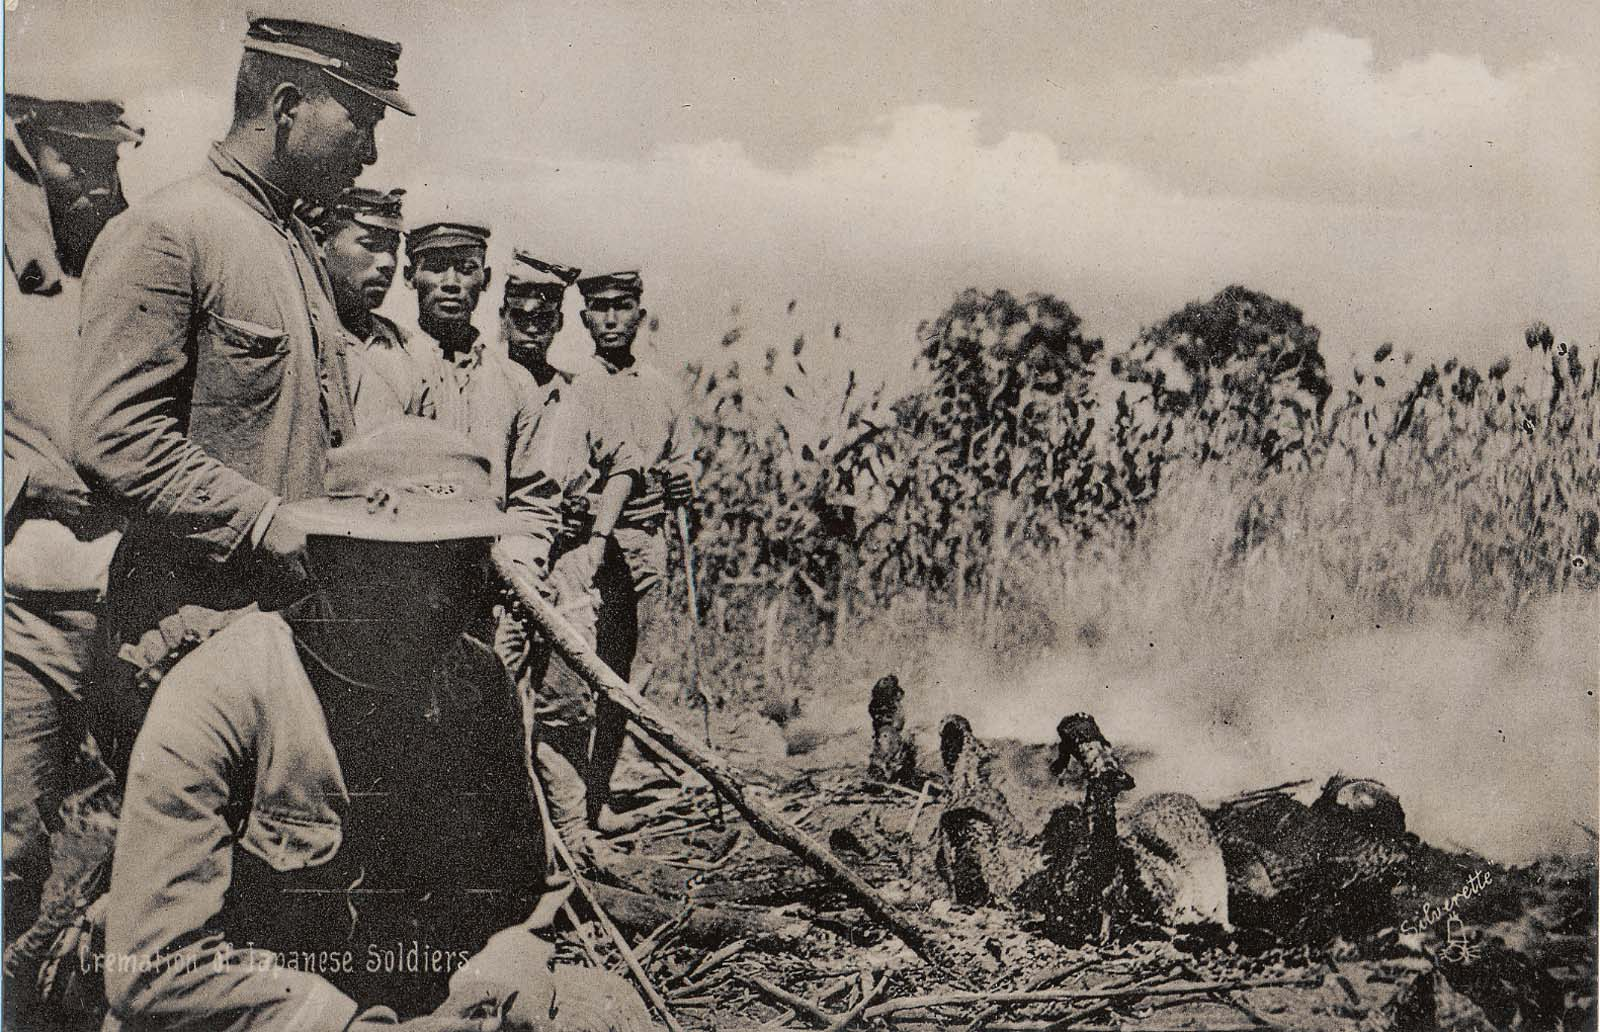 Pin on MILITAIRE : RUSSO-JAPANESE 1904-1905